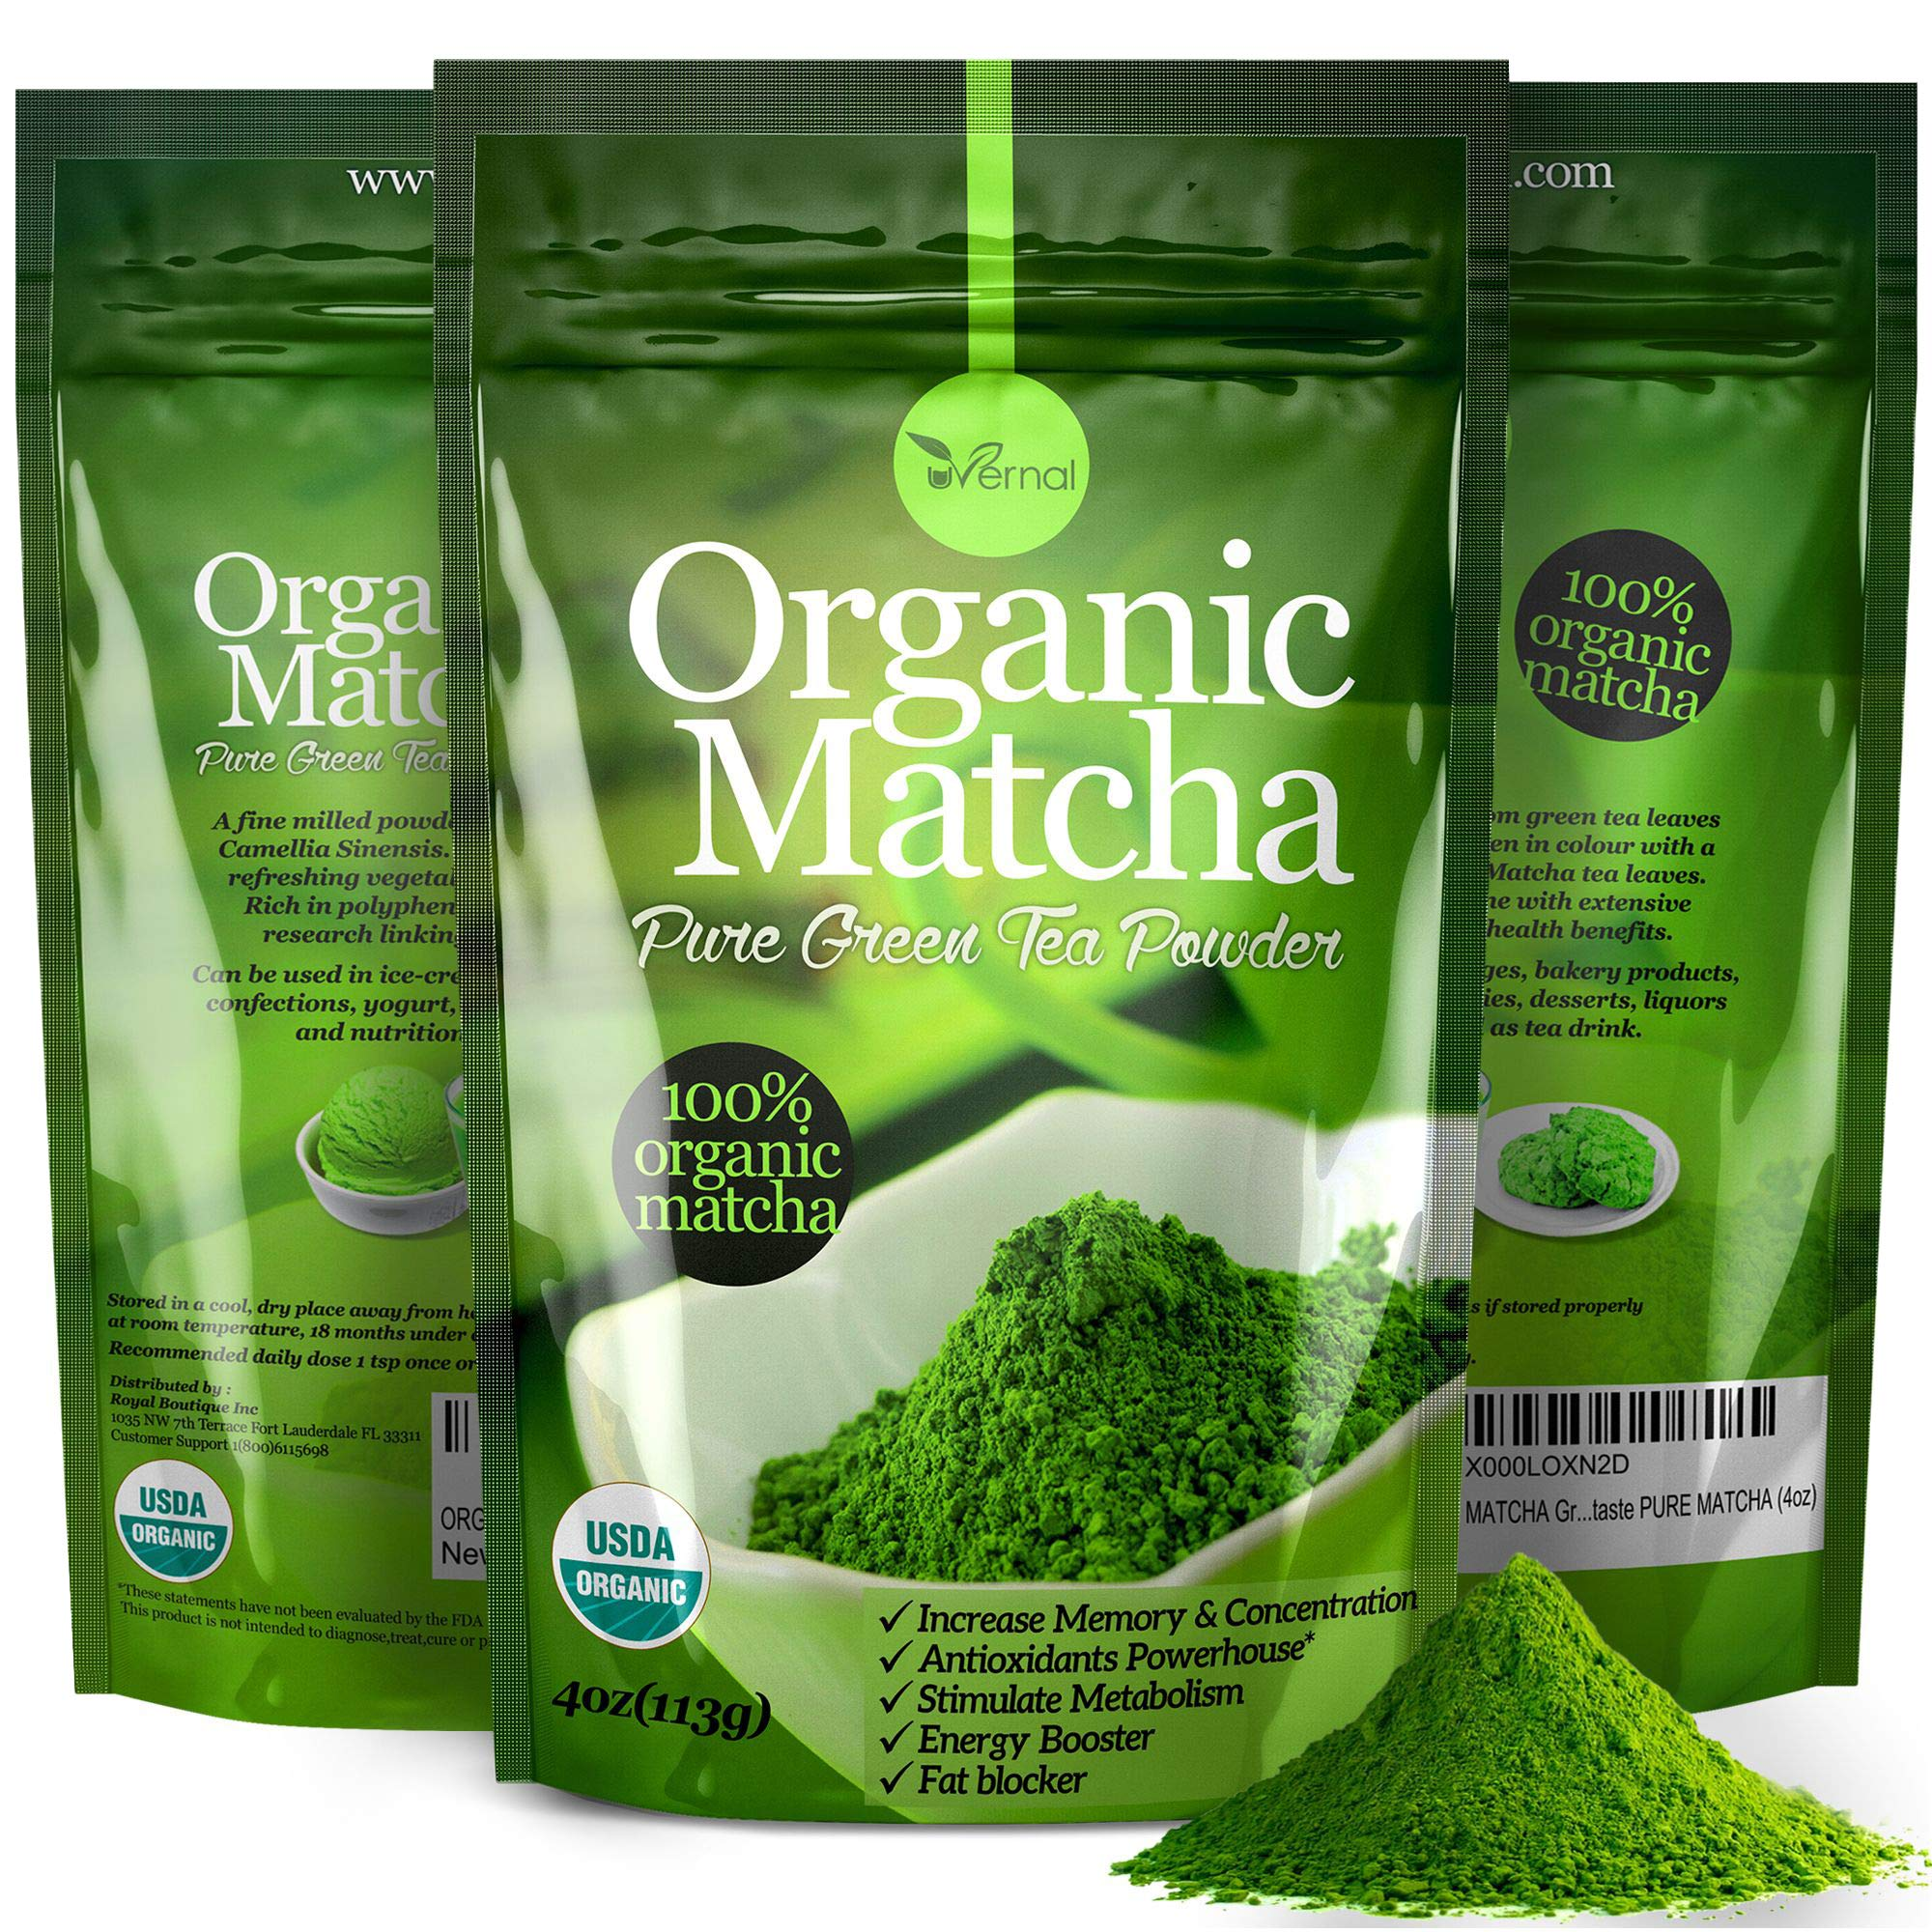 uVernal Organic Matcha Green Tea Powder 100% Pure Matcha for Smoothies, Latte and Baking - 4oz